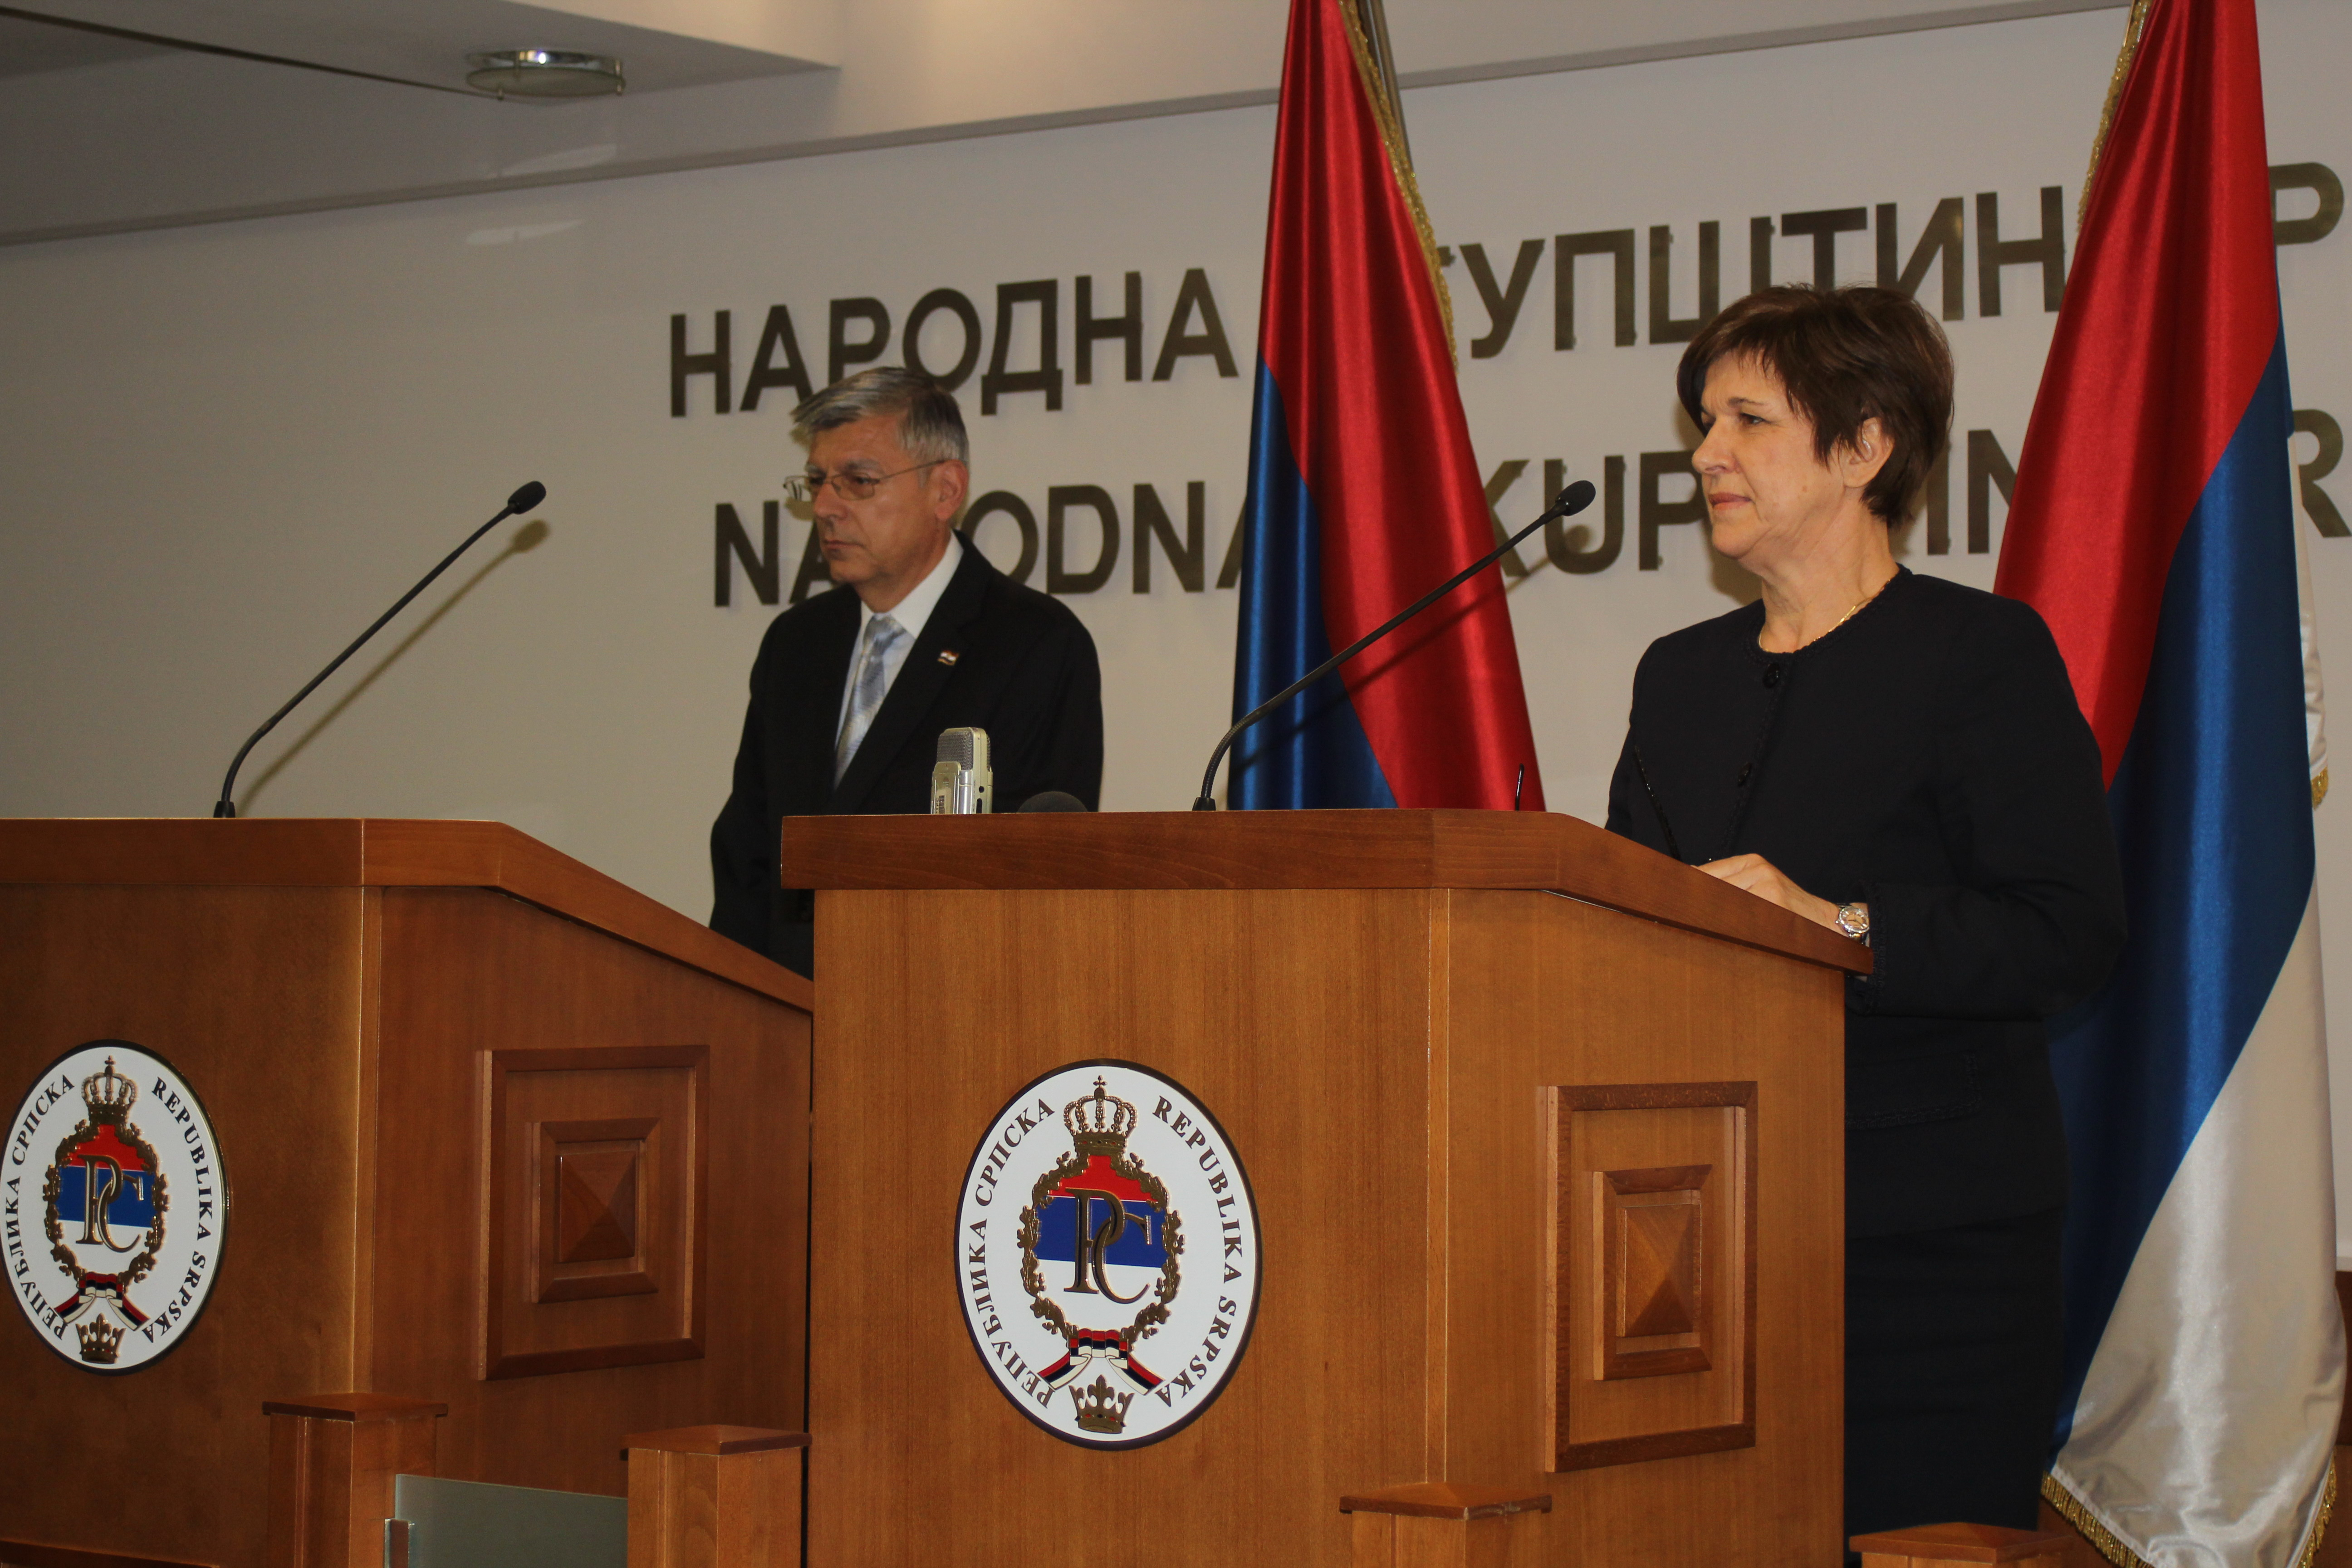 Croatian Parliament delegation visit to RS marked by incident